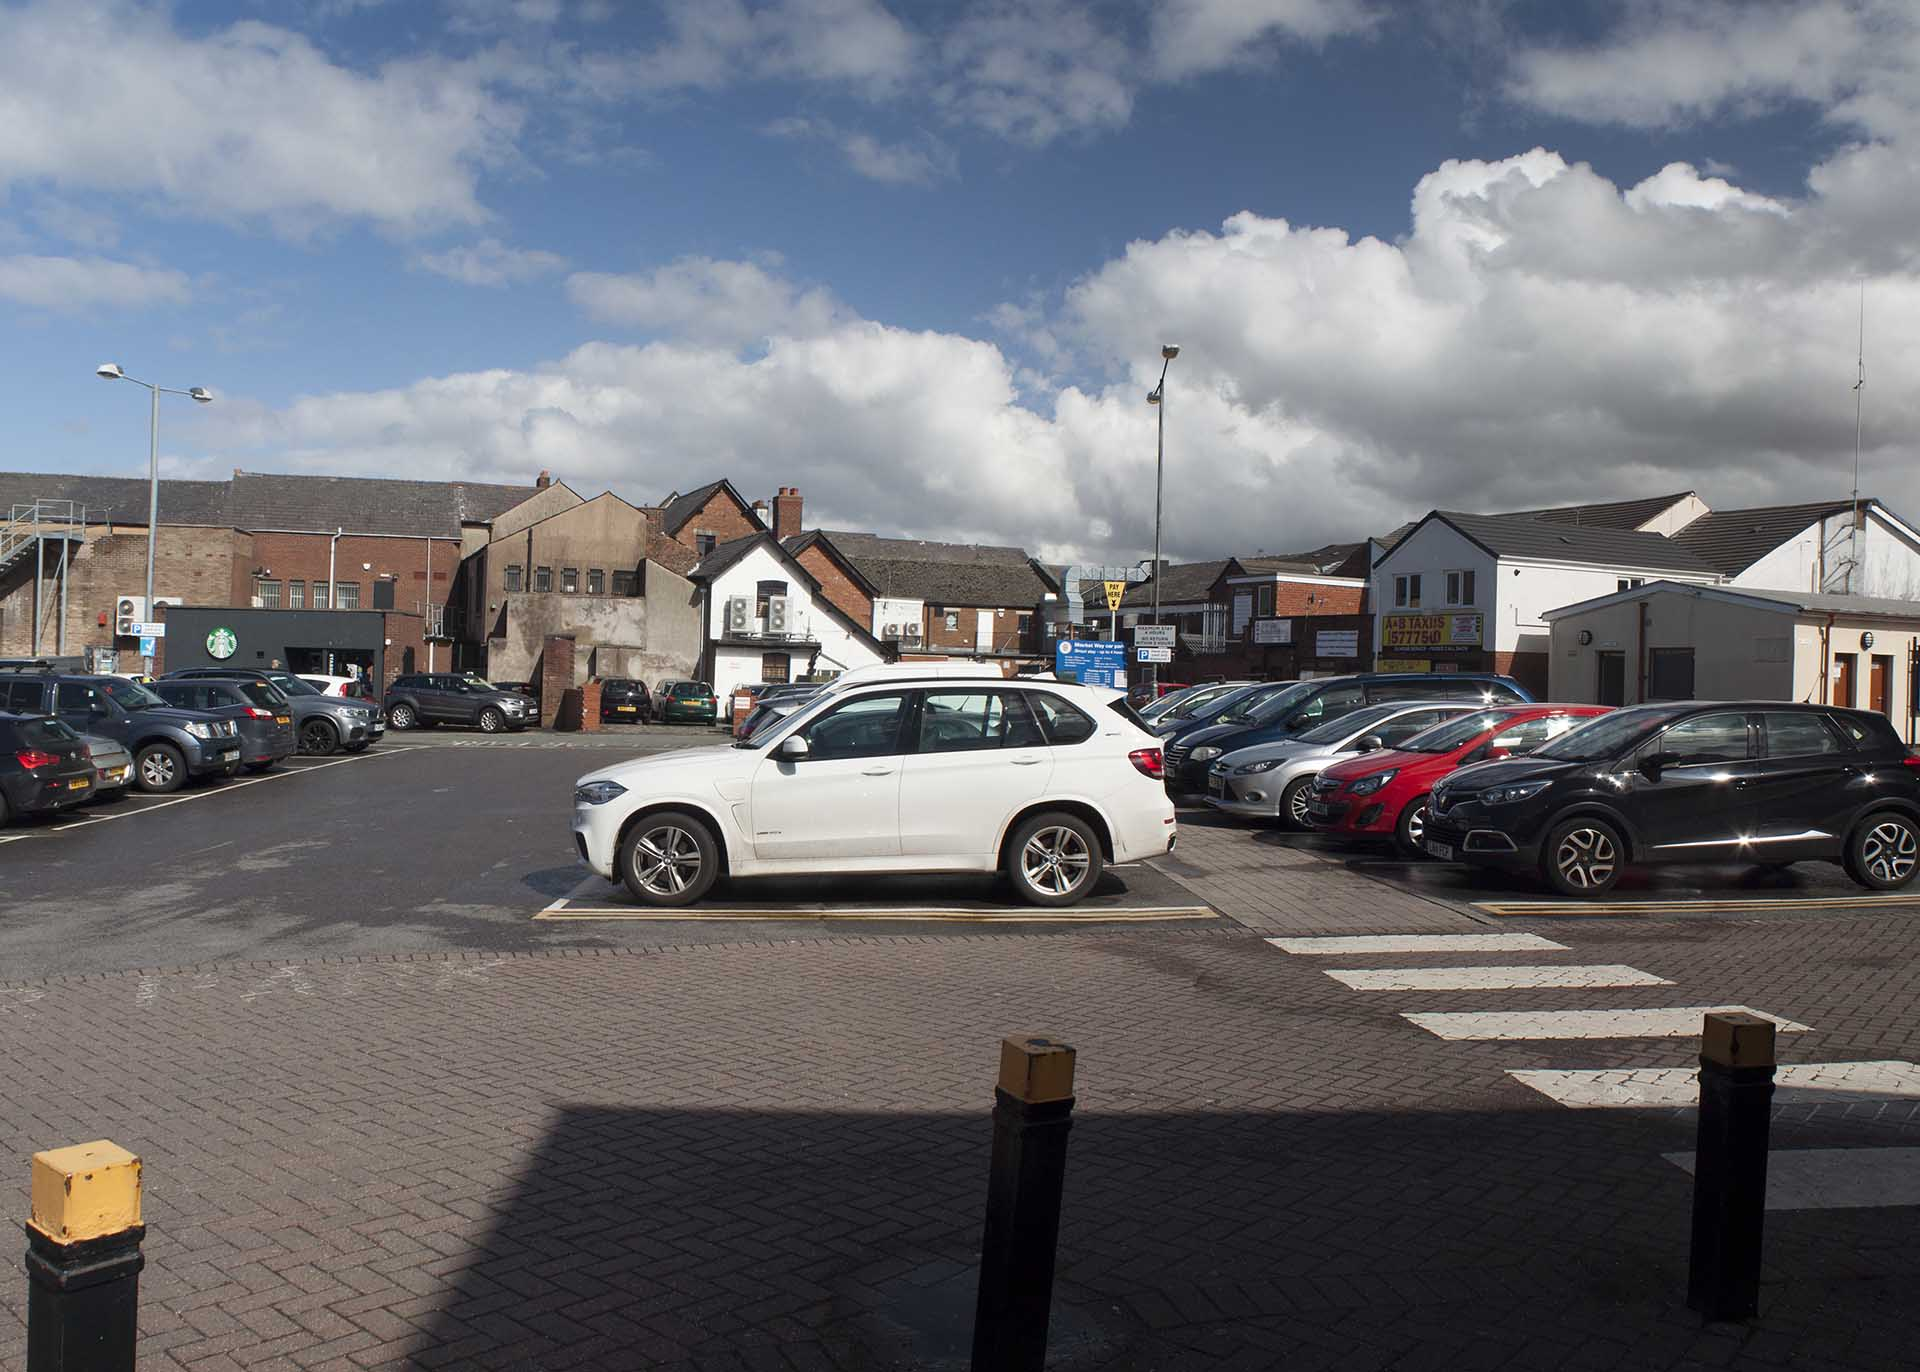 Marks and Spencer car park in Ormskirk